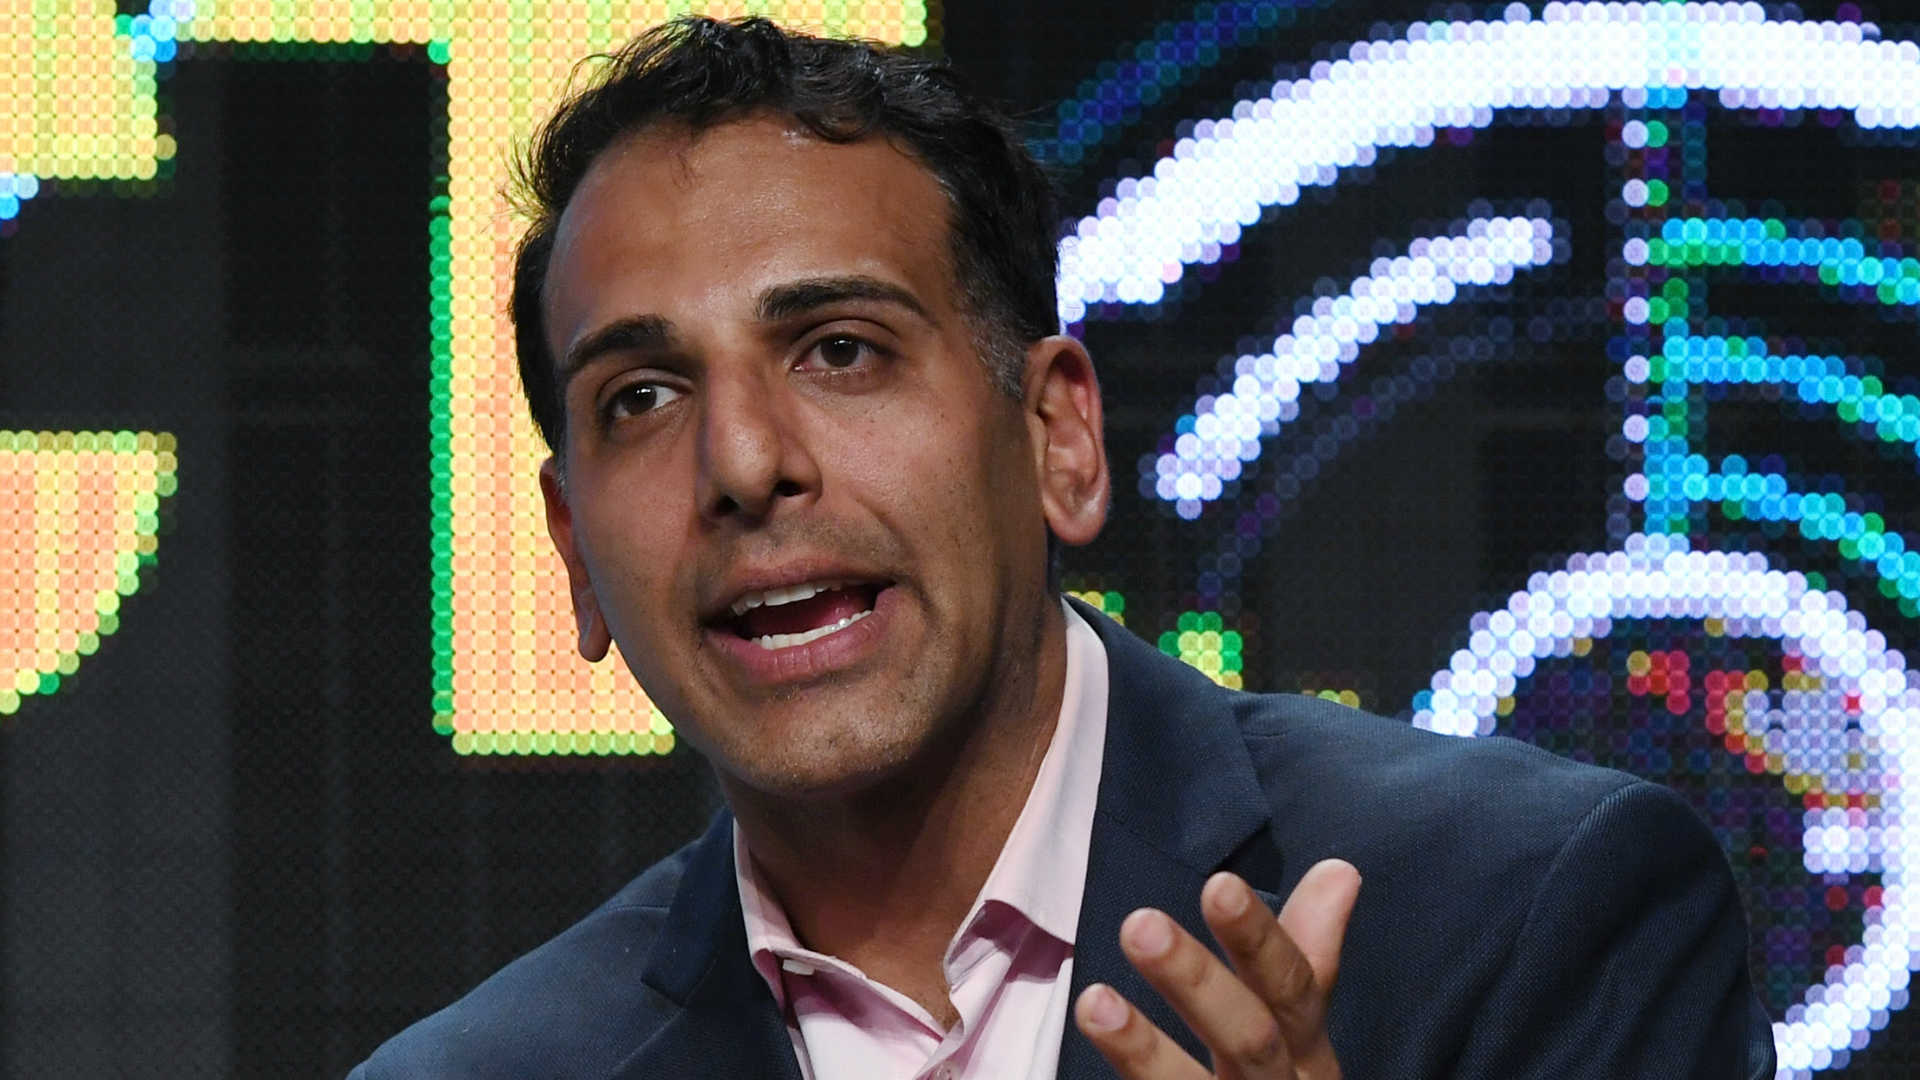 ESPN star Adnan Virk fired, escorted out in leak investigation